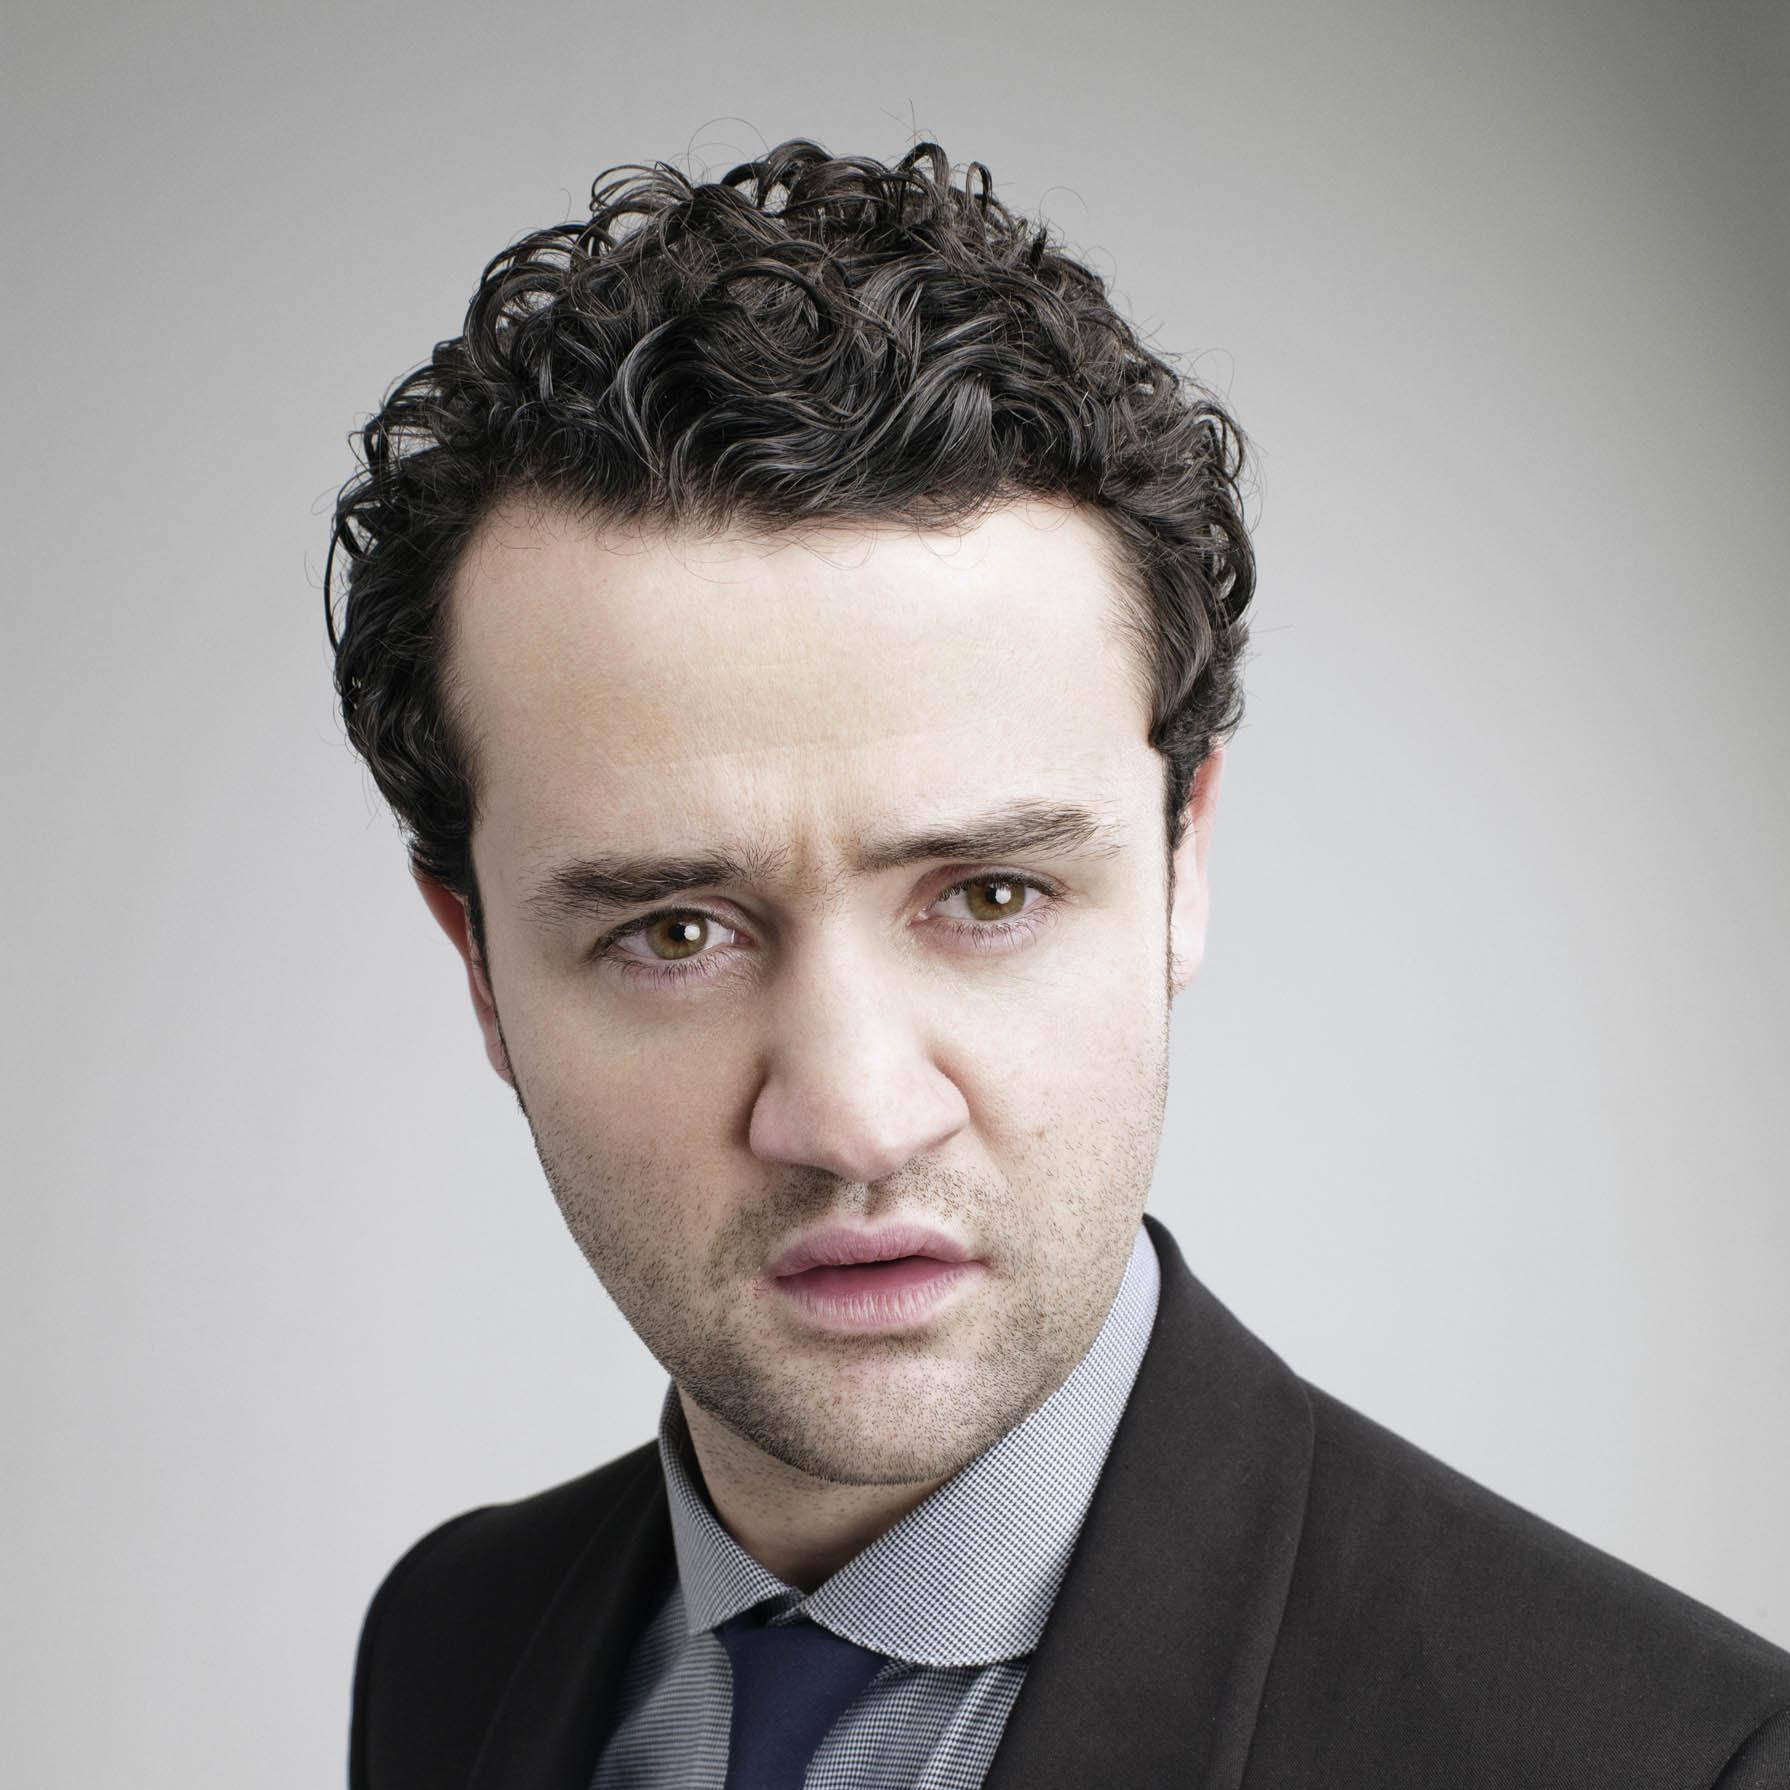 The 42-year old son of father (?) and mother(?) Daniel Mays in 2020 photo. Daniel Mays earned a million dollar salary - leaving the net worth at million in 2020